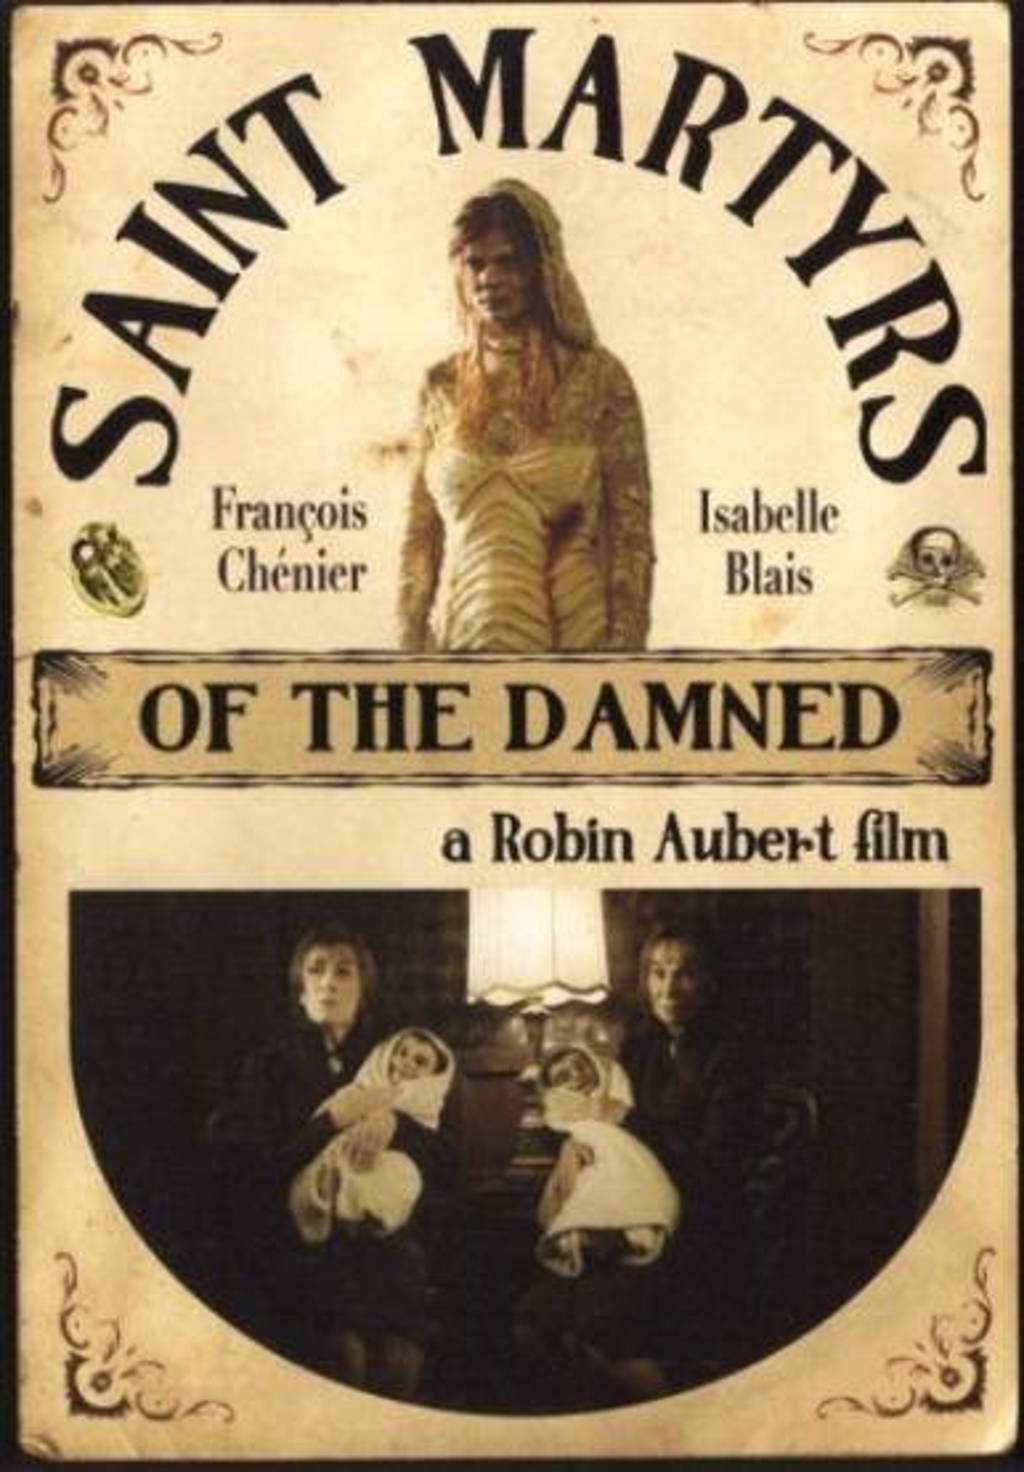 Saint martyrs of the damned (DVD)